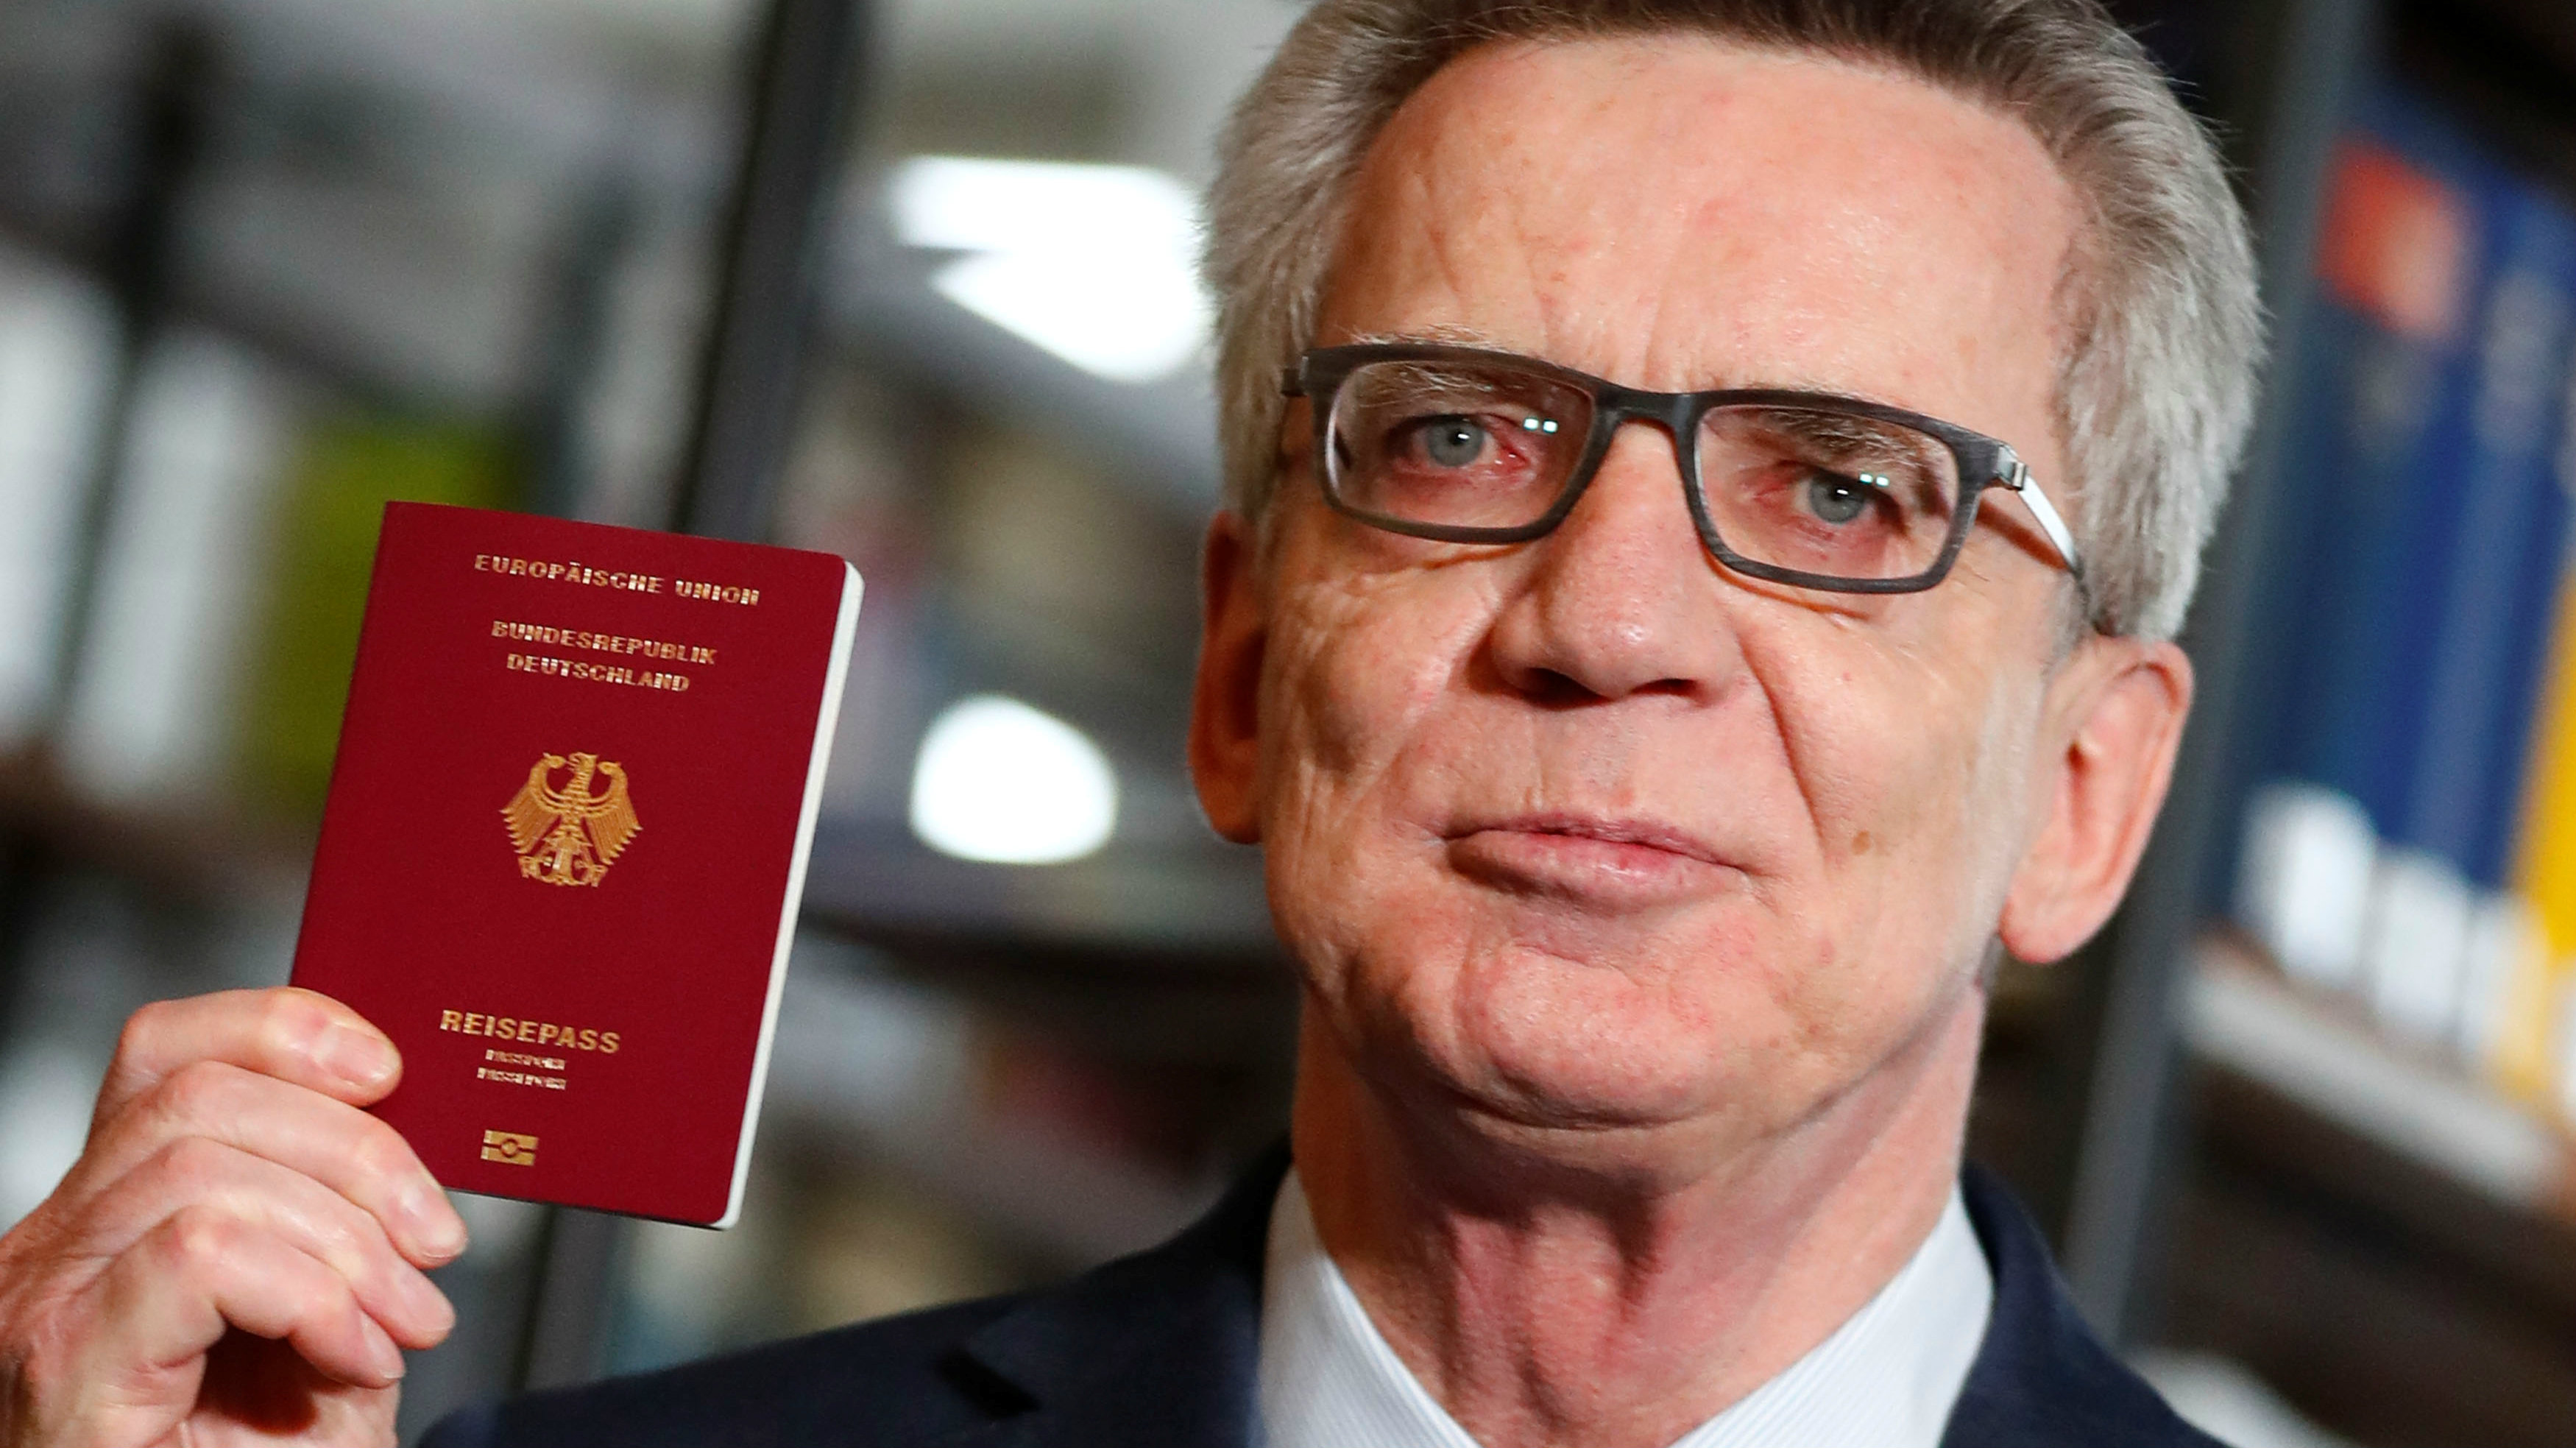 German Interior Minister Thomas de Maiziere presents the new electronic passport in Berlin, Germany, February 23, 2017.